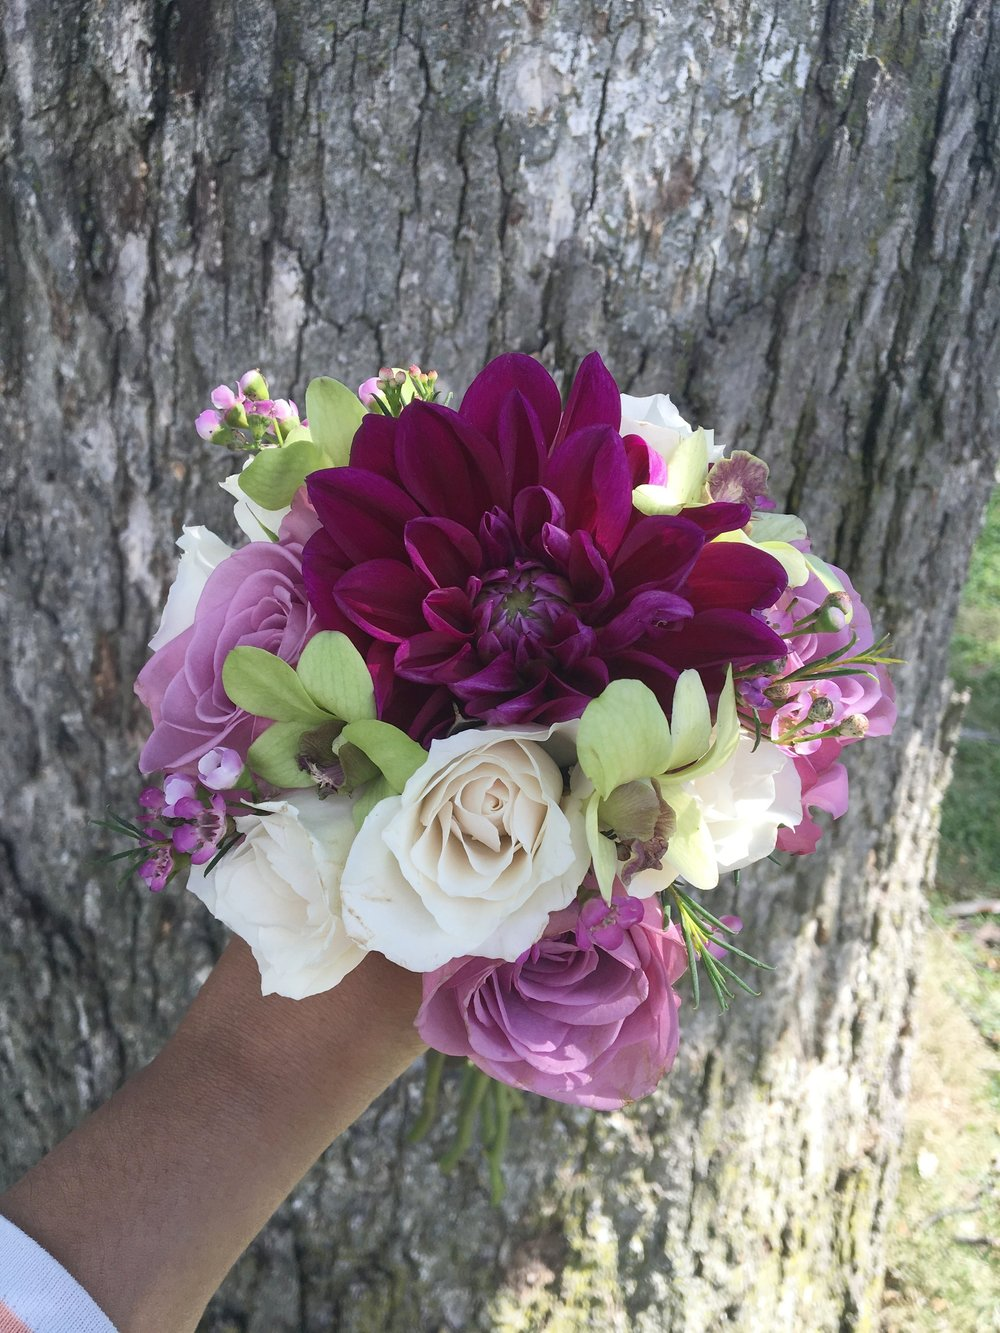 Evelisa Floral & Design: Bouquet